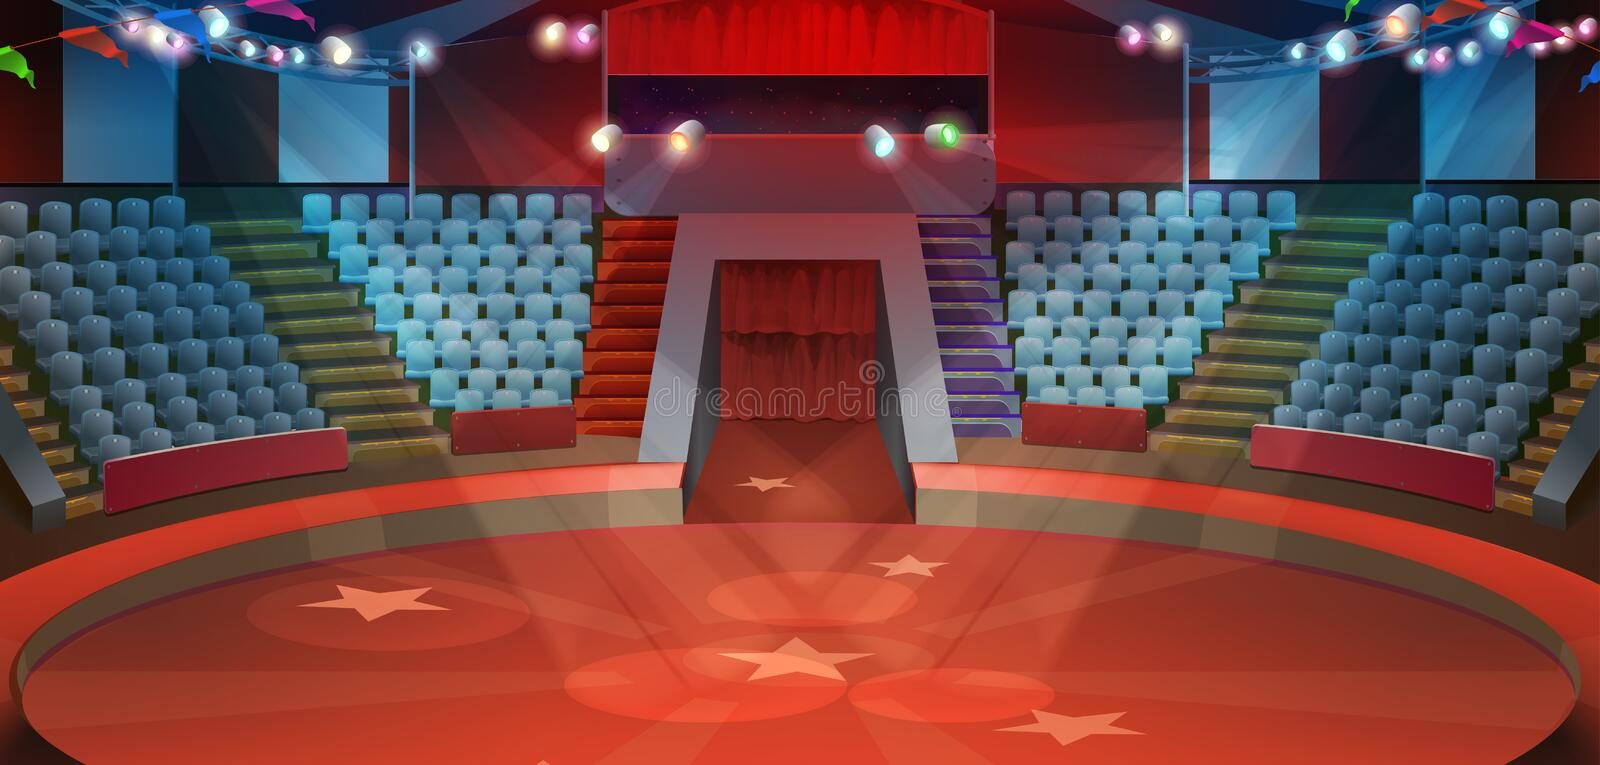 Circus arena background royalty free illustration